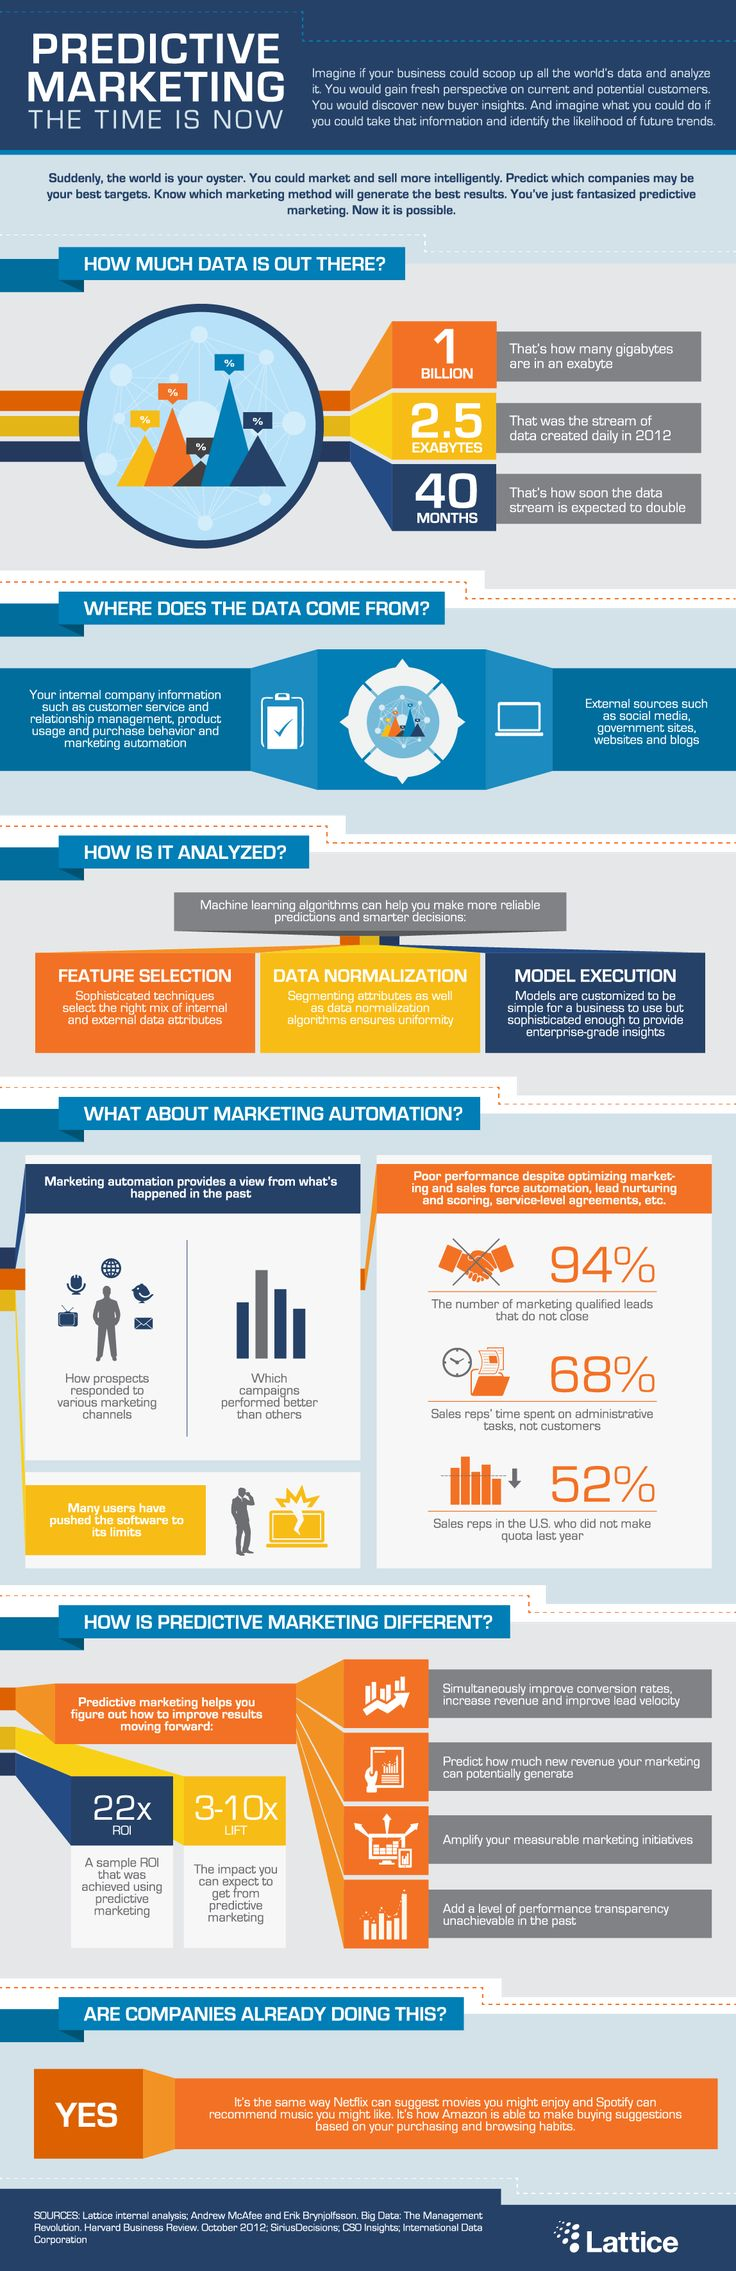 Predictive Marketing: The Time is Now #infographic #Automation #Marketing